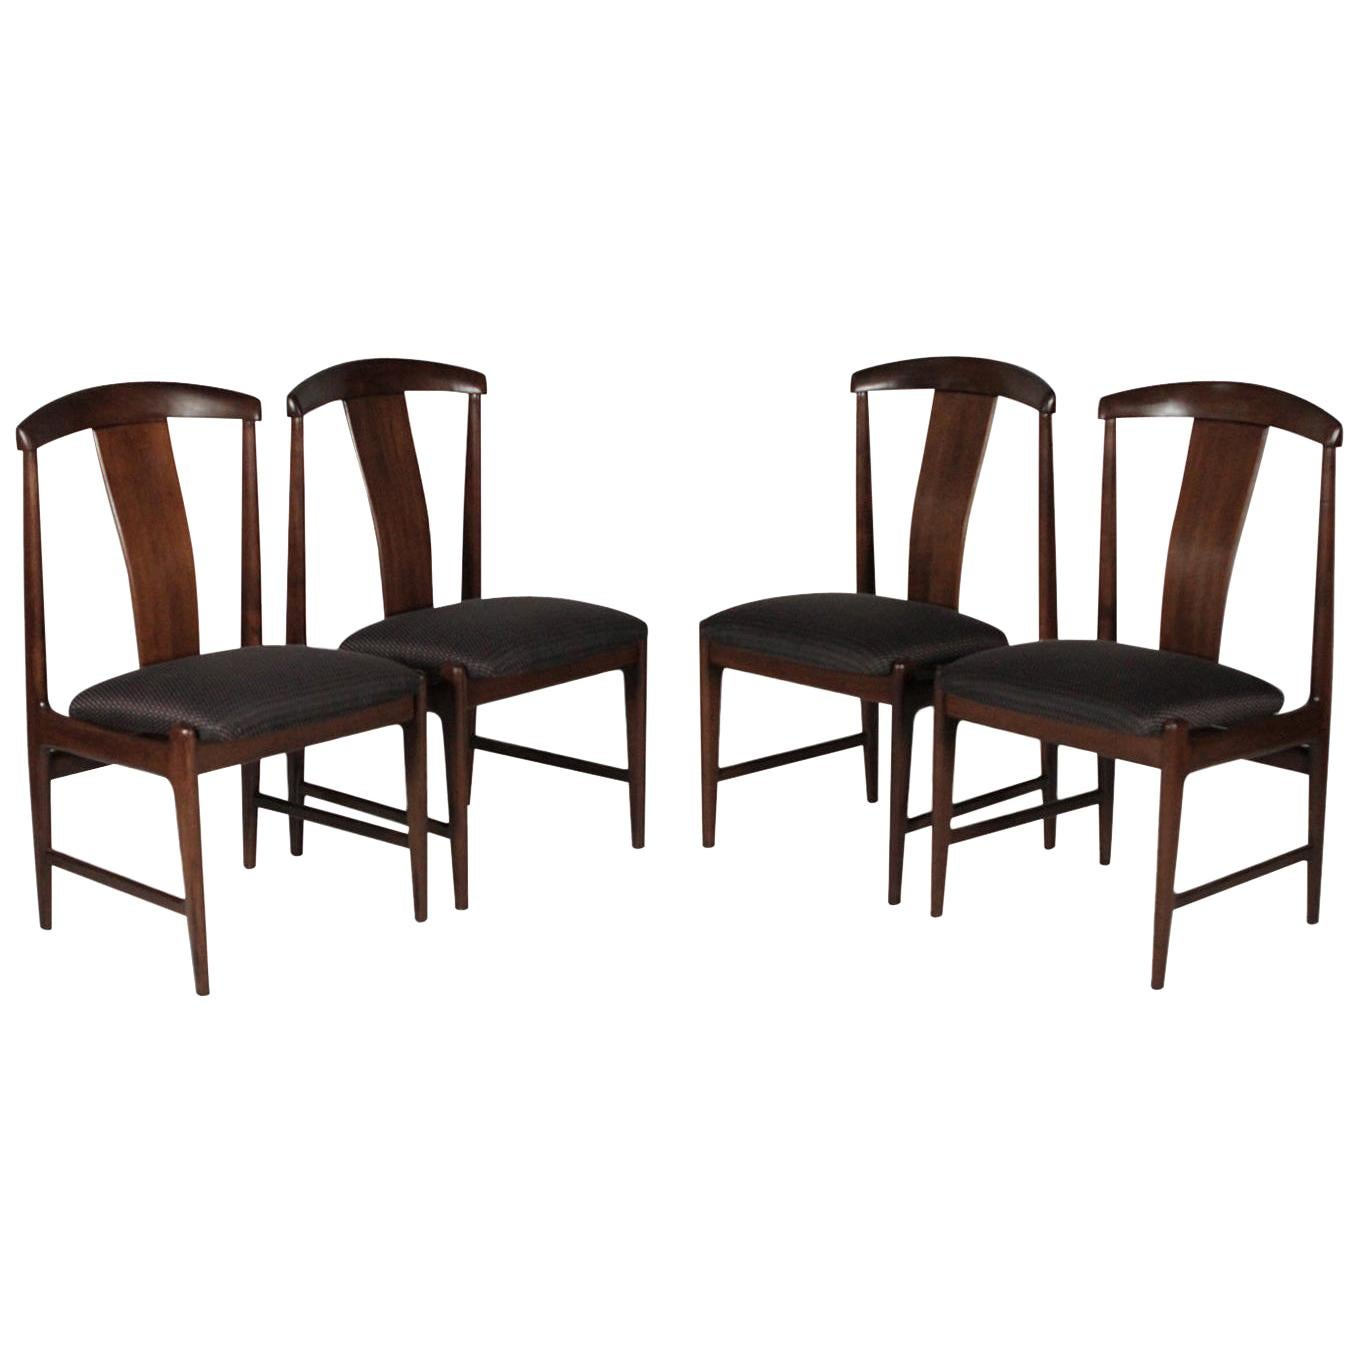 Set of Four Teak Dining Chairs by Folke Ohlsson for DUX, 1950s